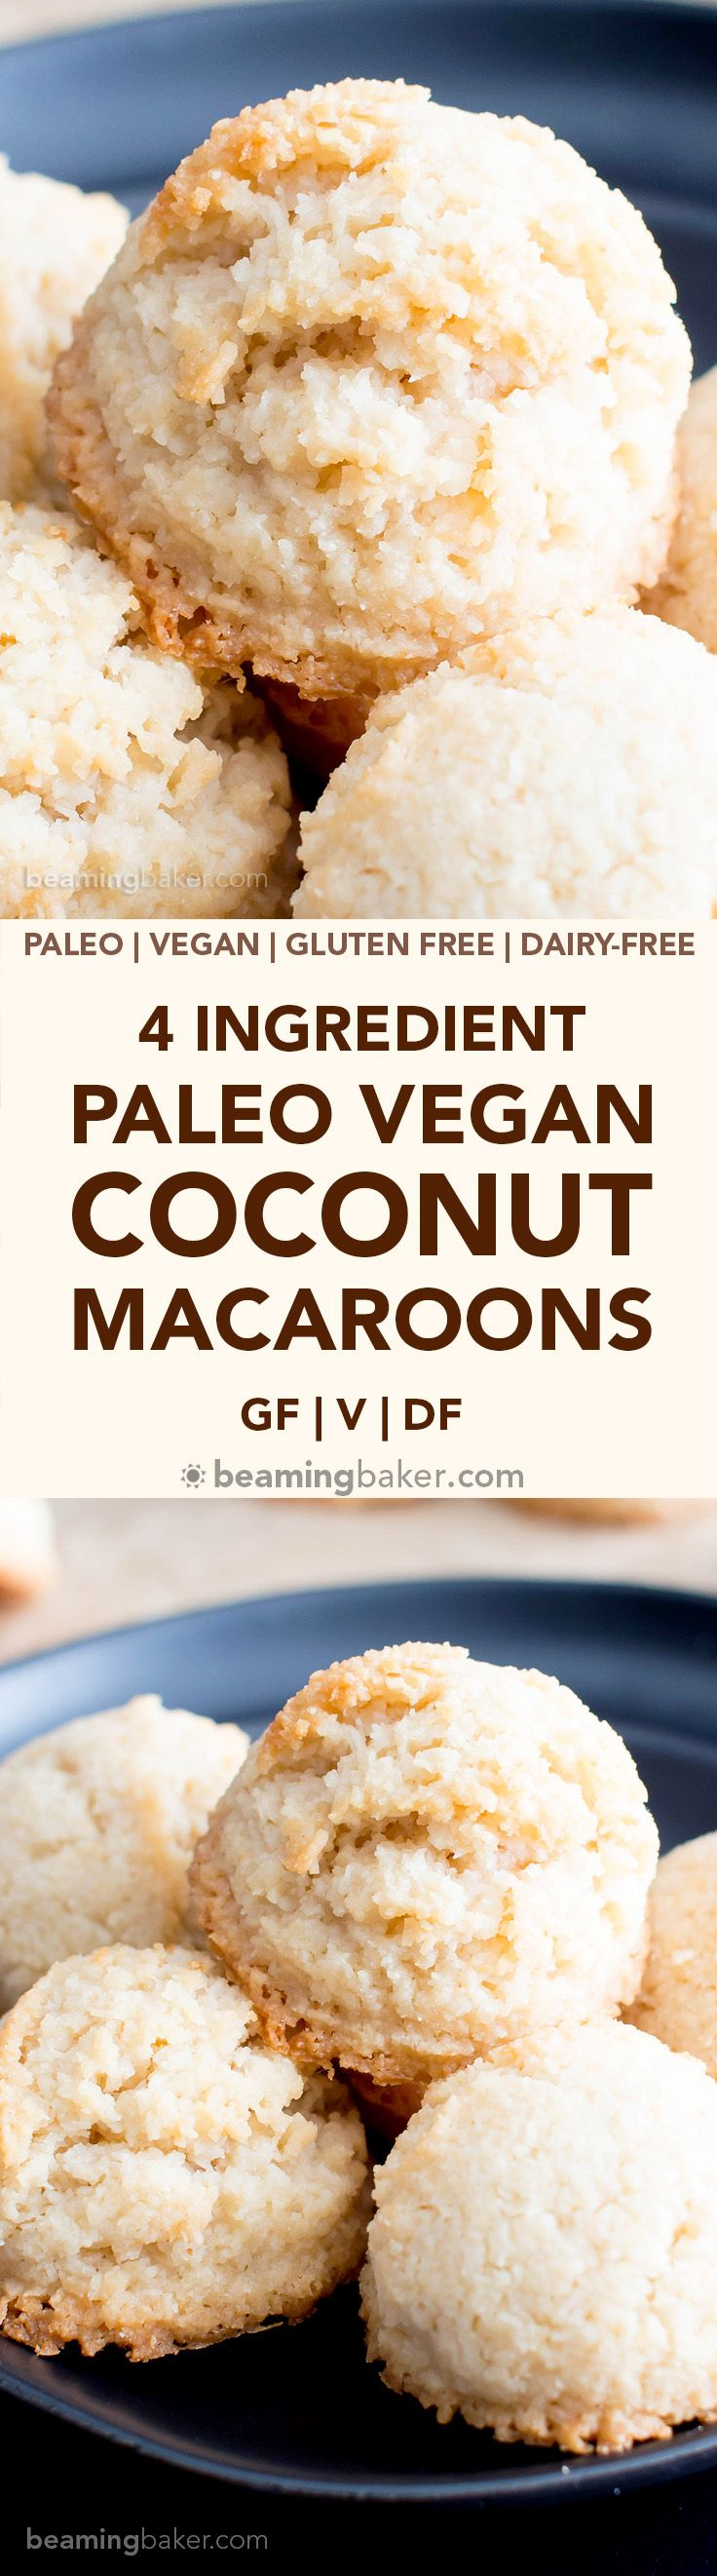 4 Ingredient Paleo Coconut Macaroons Recipe (V, GF):a super easy, 5-min prep recipe for irresistibly chewy and sweet macaroons bursting with delicious coconut flavor.Paleo, Vegan, Gluten-Free, Dairy-Free. Made with whole ingredients. #Coconut #Paleo #Vegan #GlutenFree #DairyFree #Cookies #Dessert | Recipe on BeamingBaker.com